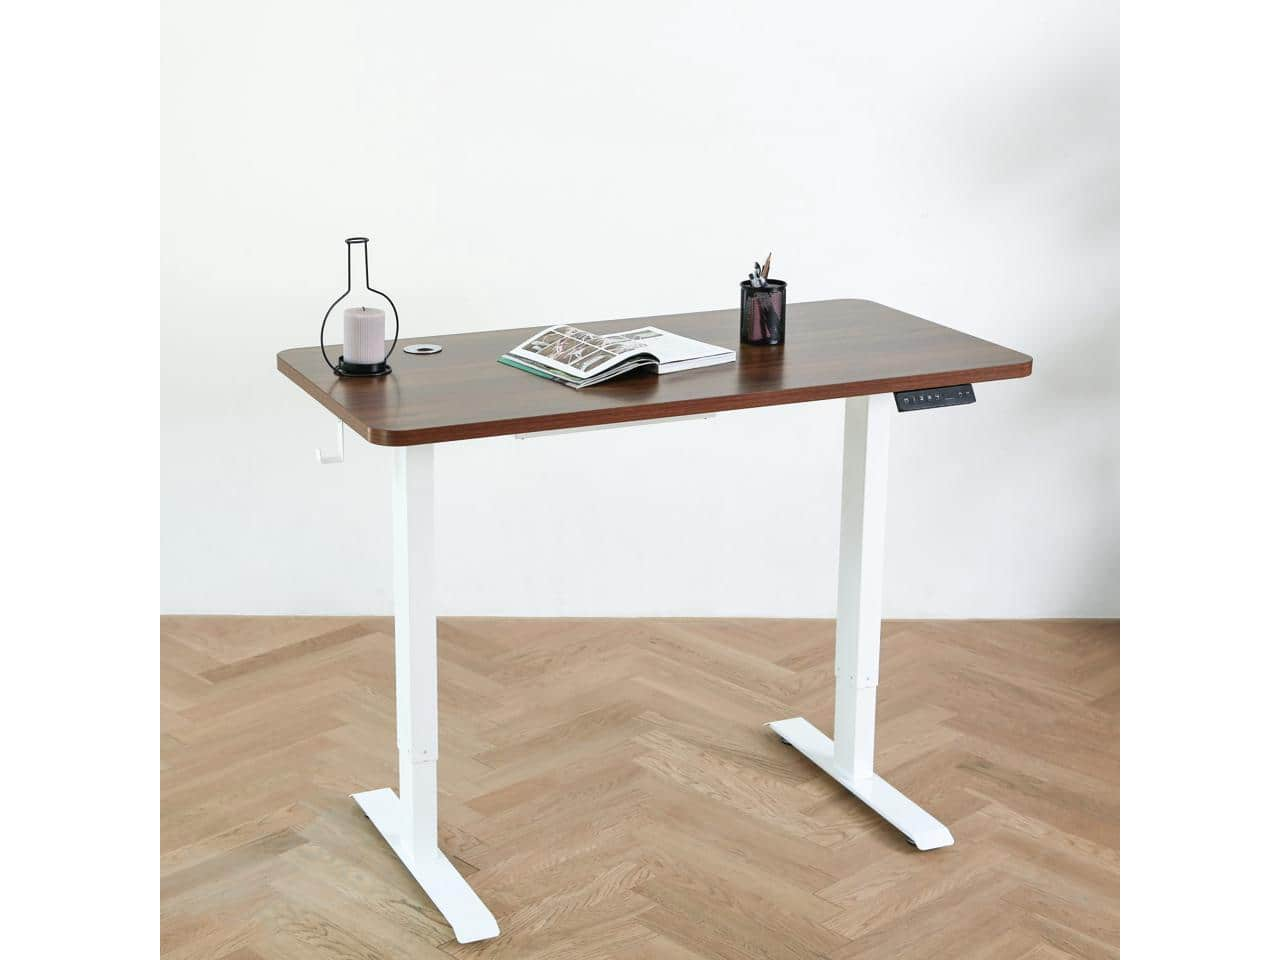 Elived 47x24 Inch Height Adjustable Standing Desk with Dual Motors plus $15 Newegg gift card $196.59